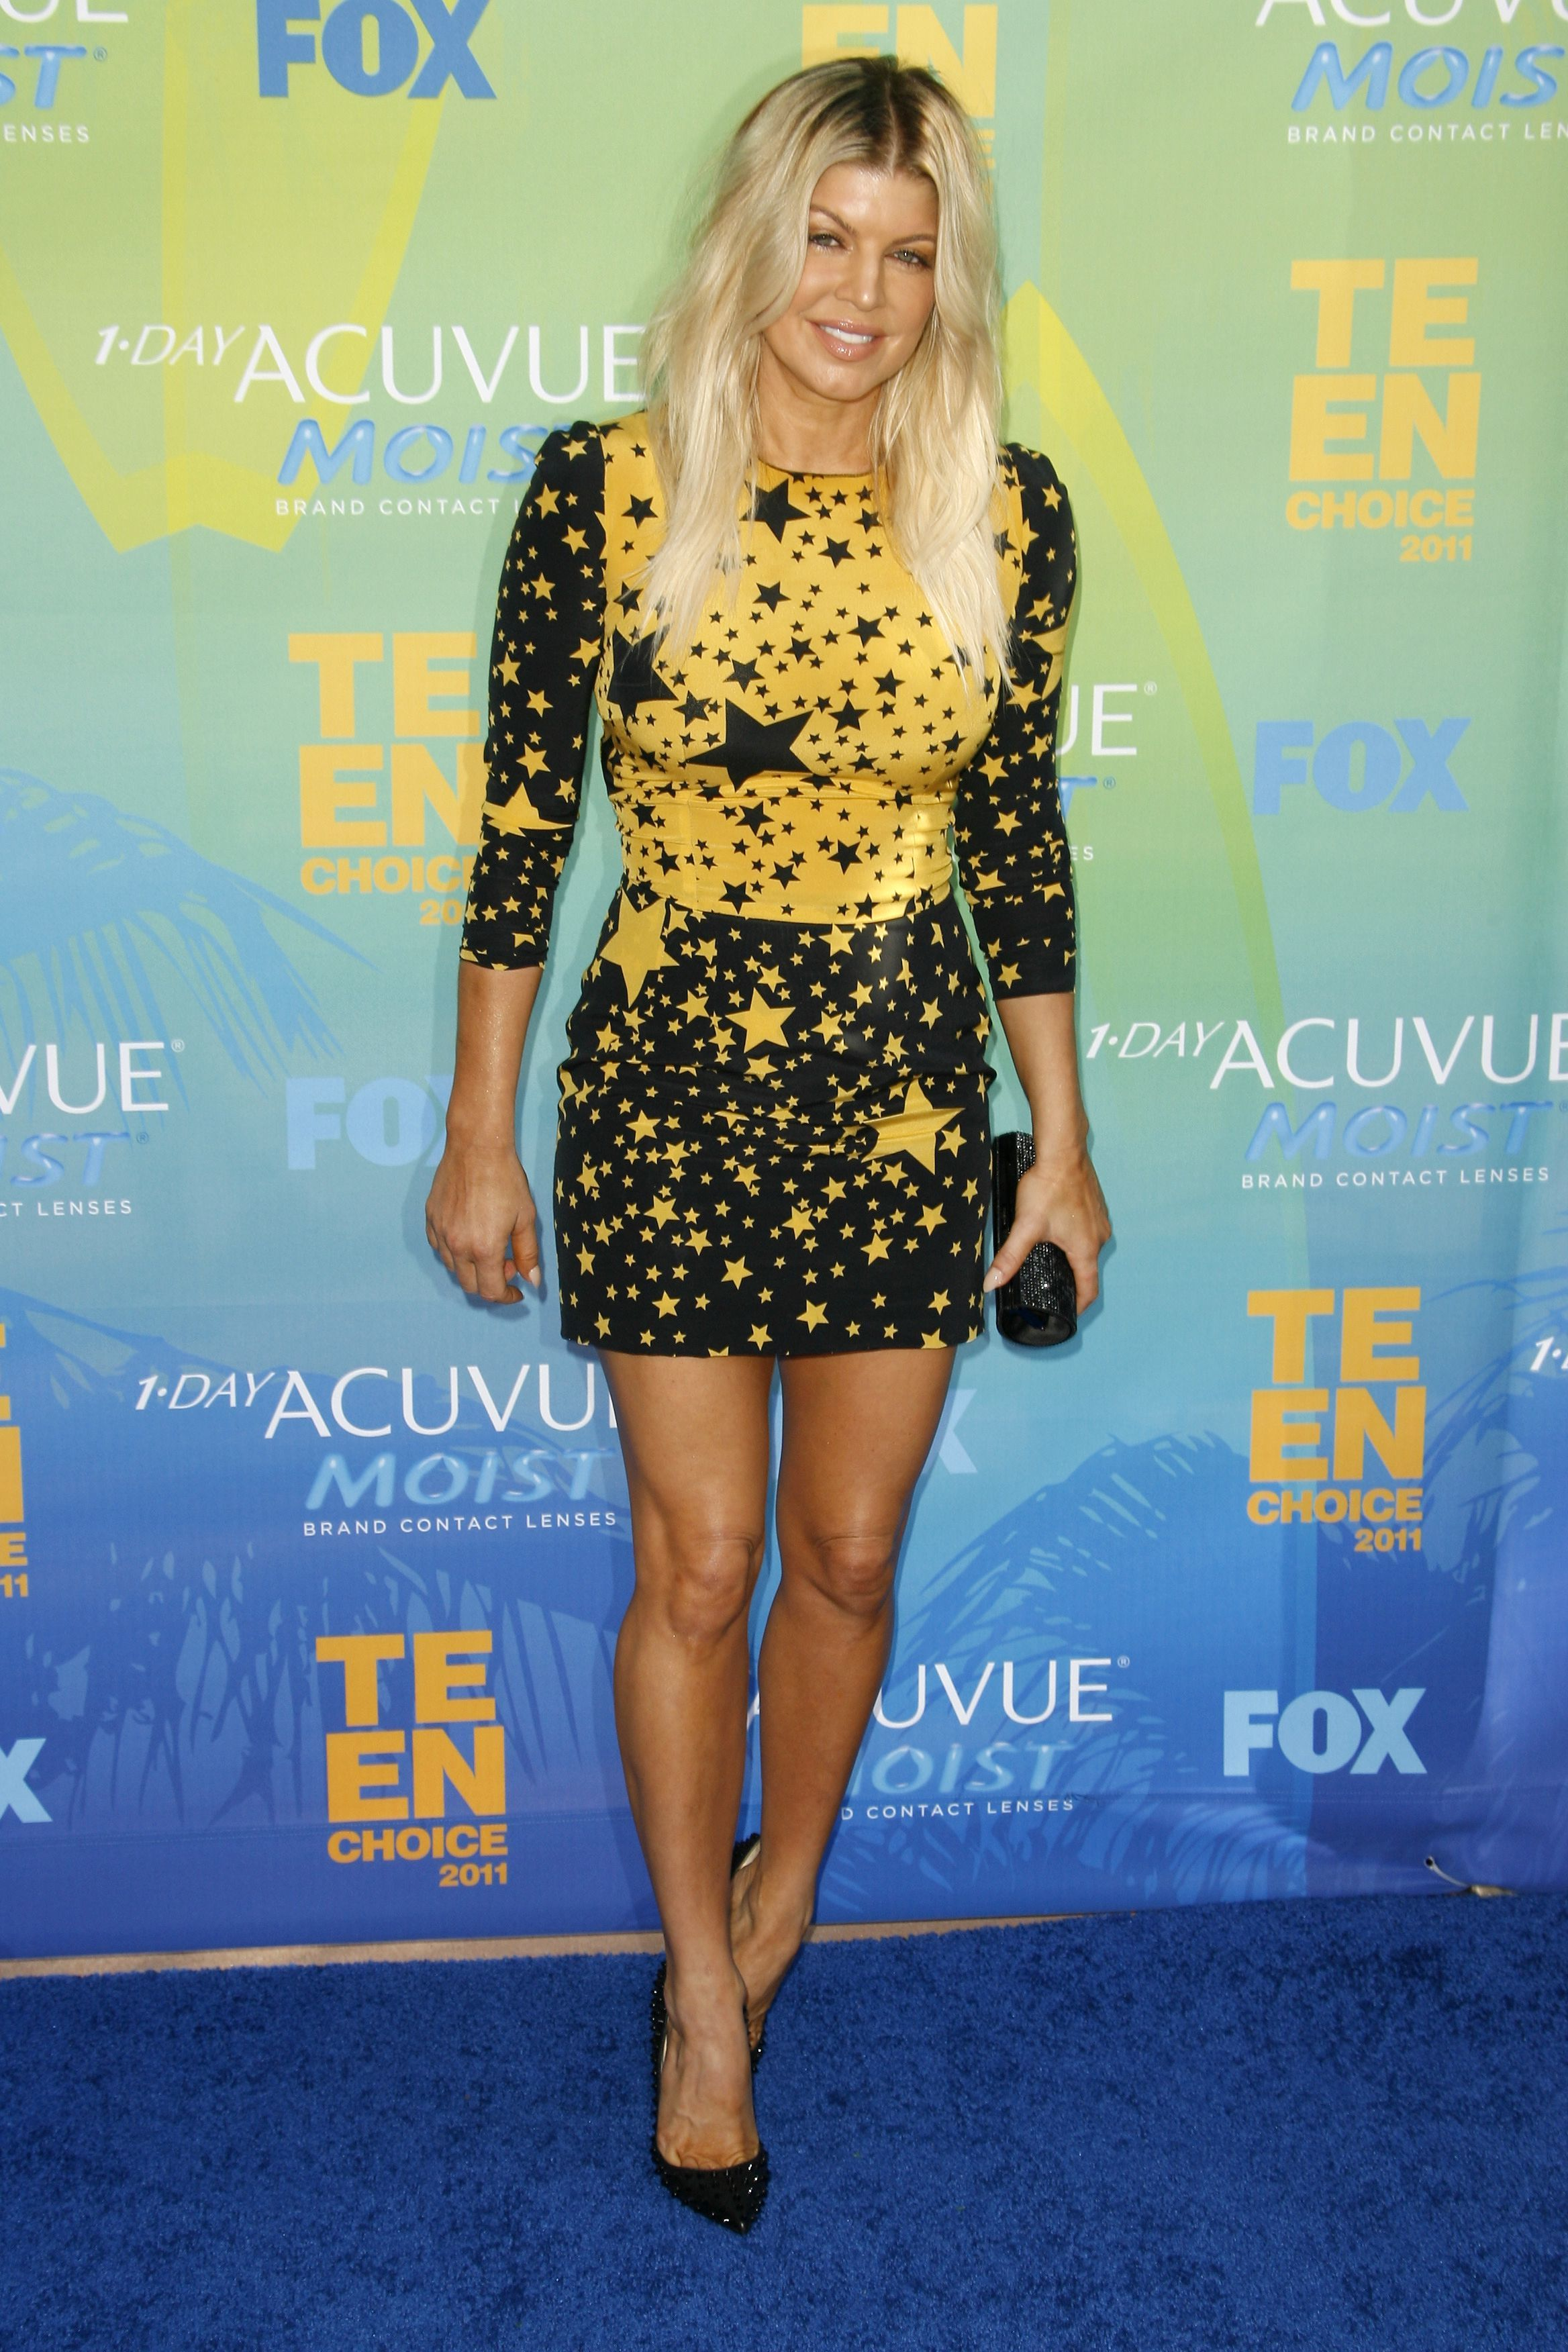 Fergie attends the Teen Choice Awards in Los Angeles on August 7, 2011.